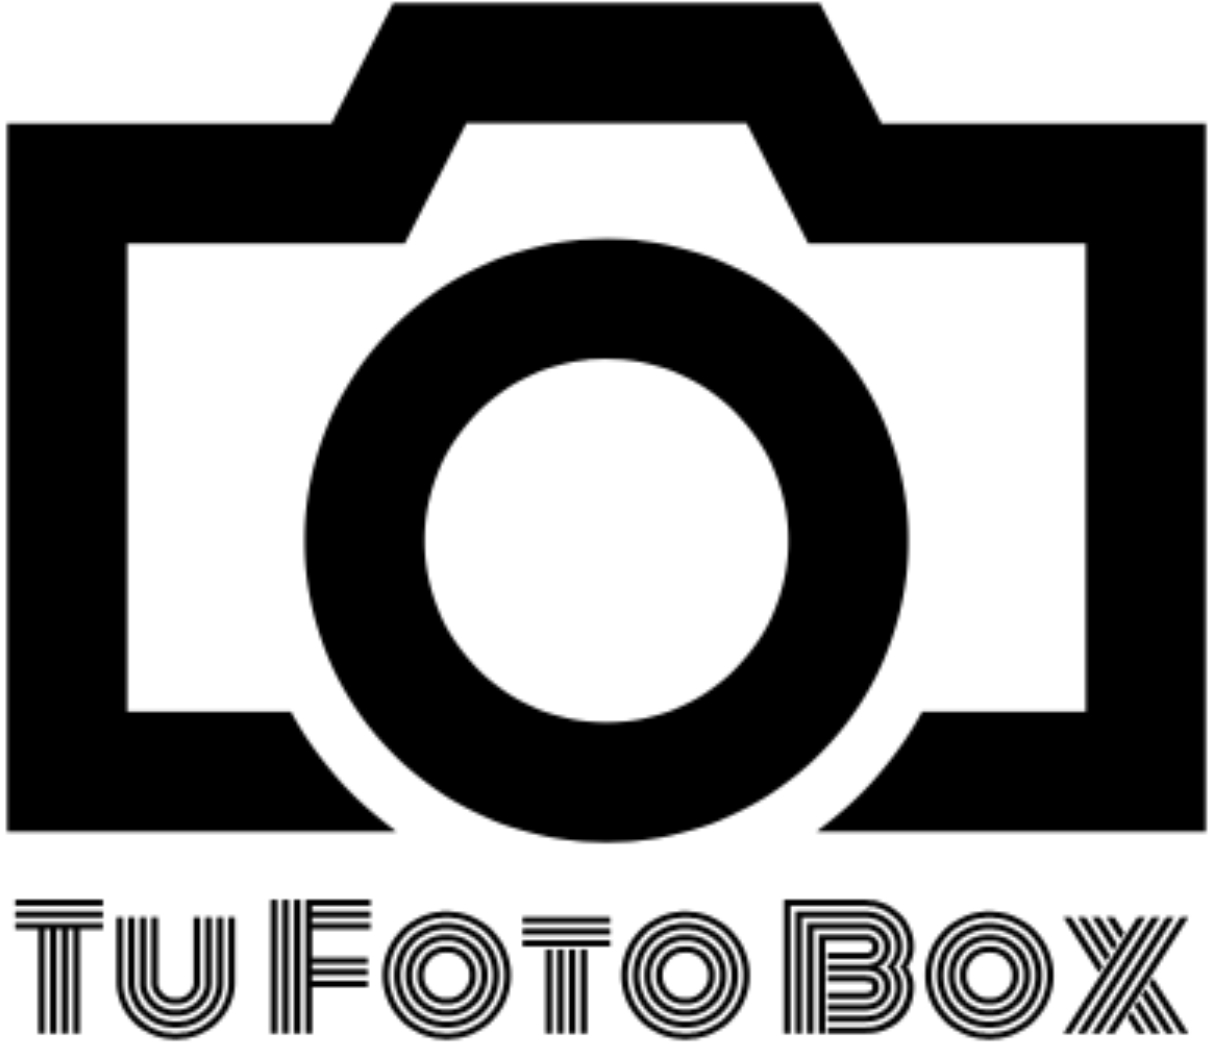 TuFotoBox